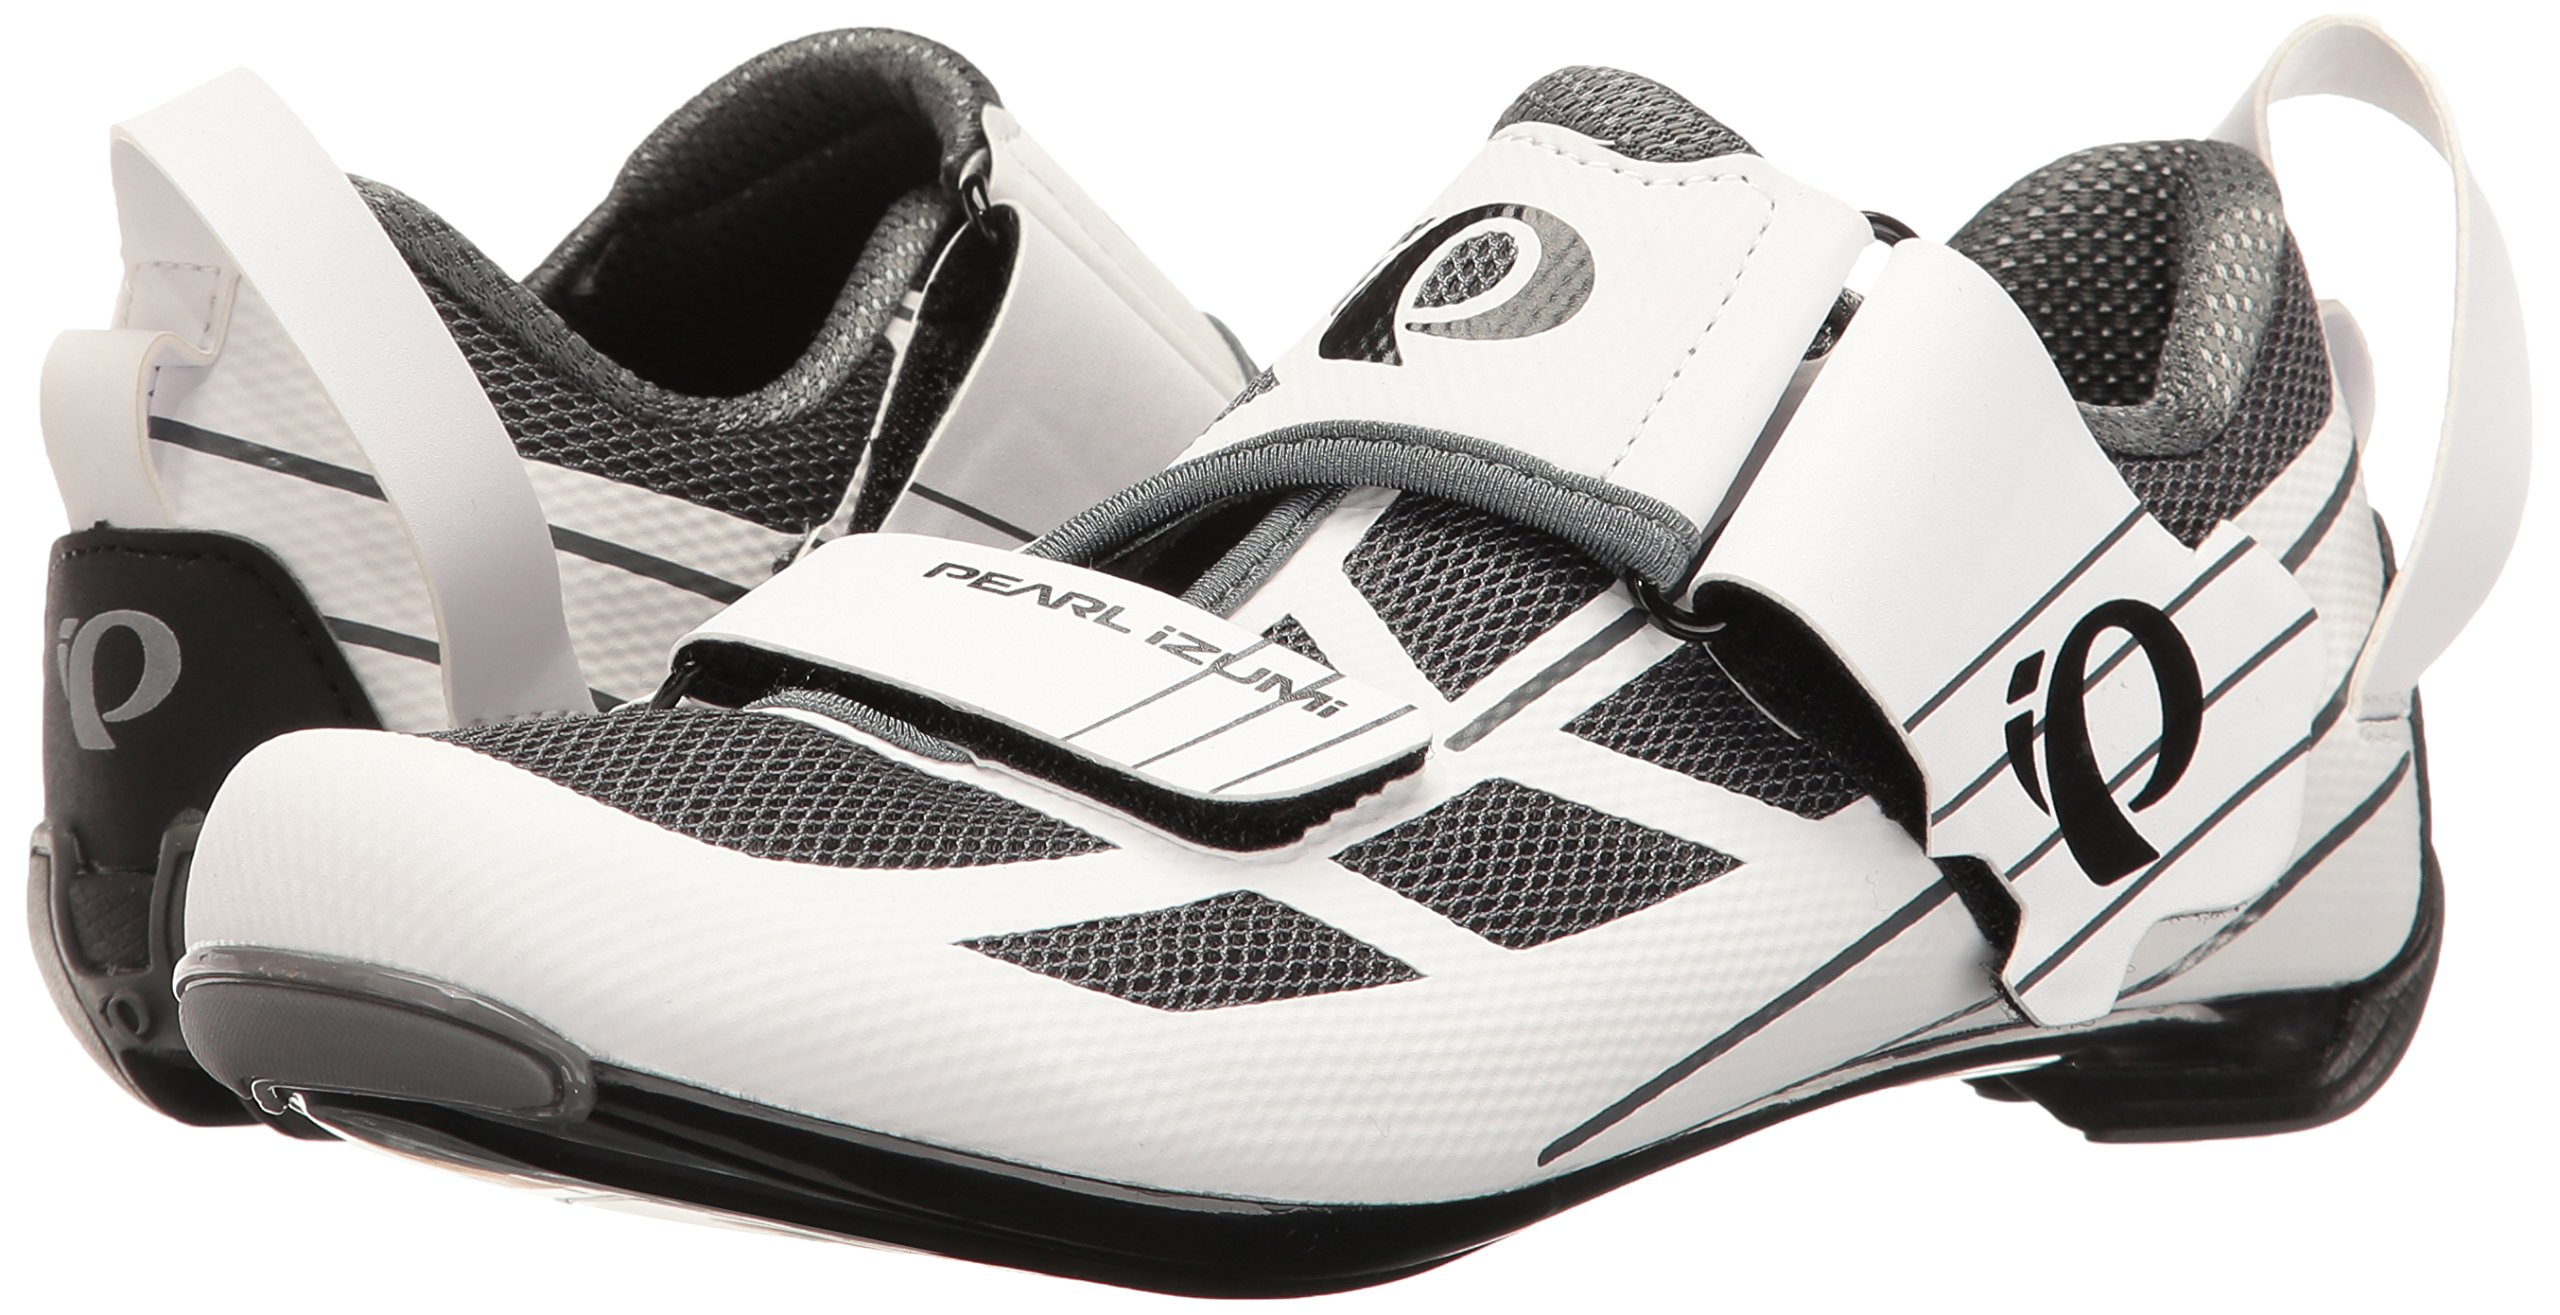 Pearl iZUMi Women's W Tri Fly Select V6 Cycling Shoe, White/Shadow Grey, 42 EU/10 B US by Pearl iZUMi (Image #6)